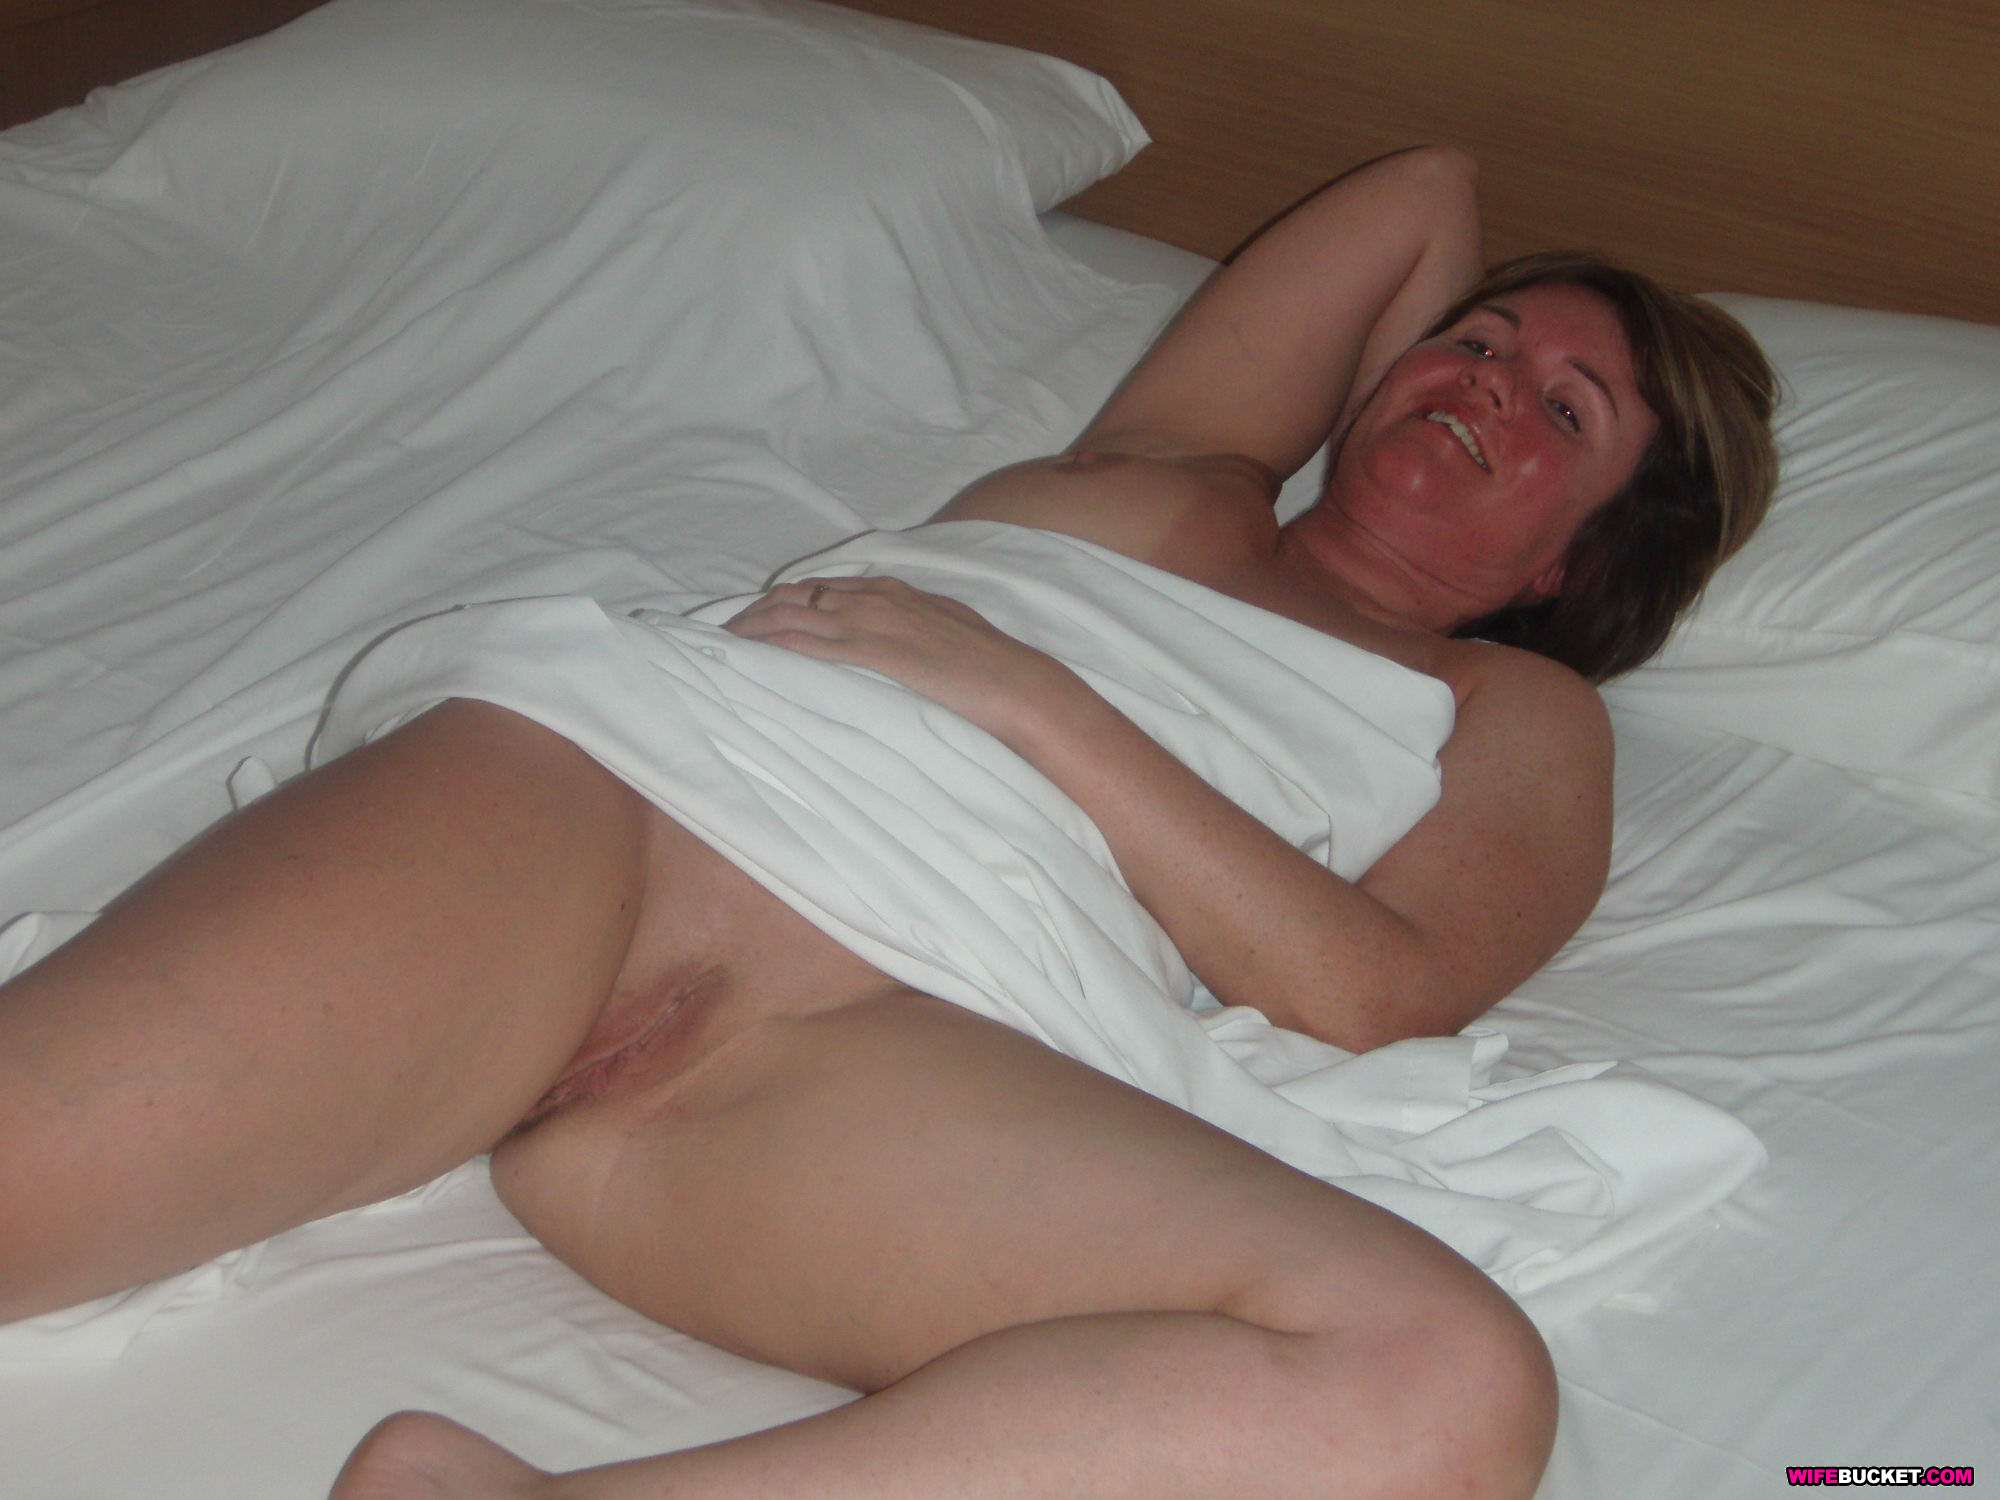 Wifebucket - Real Amateur Milfs And Wives Swingers Too-4099